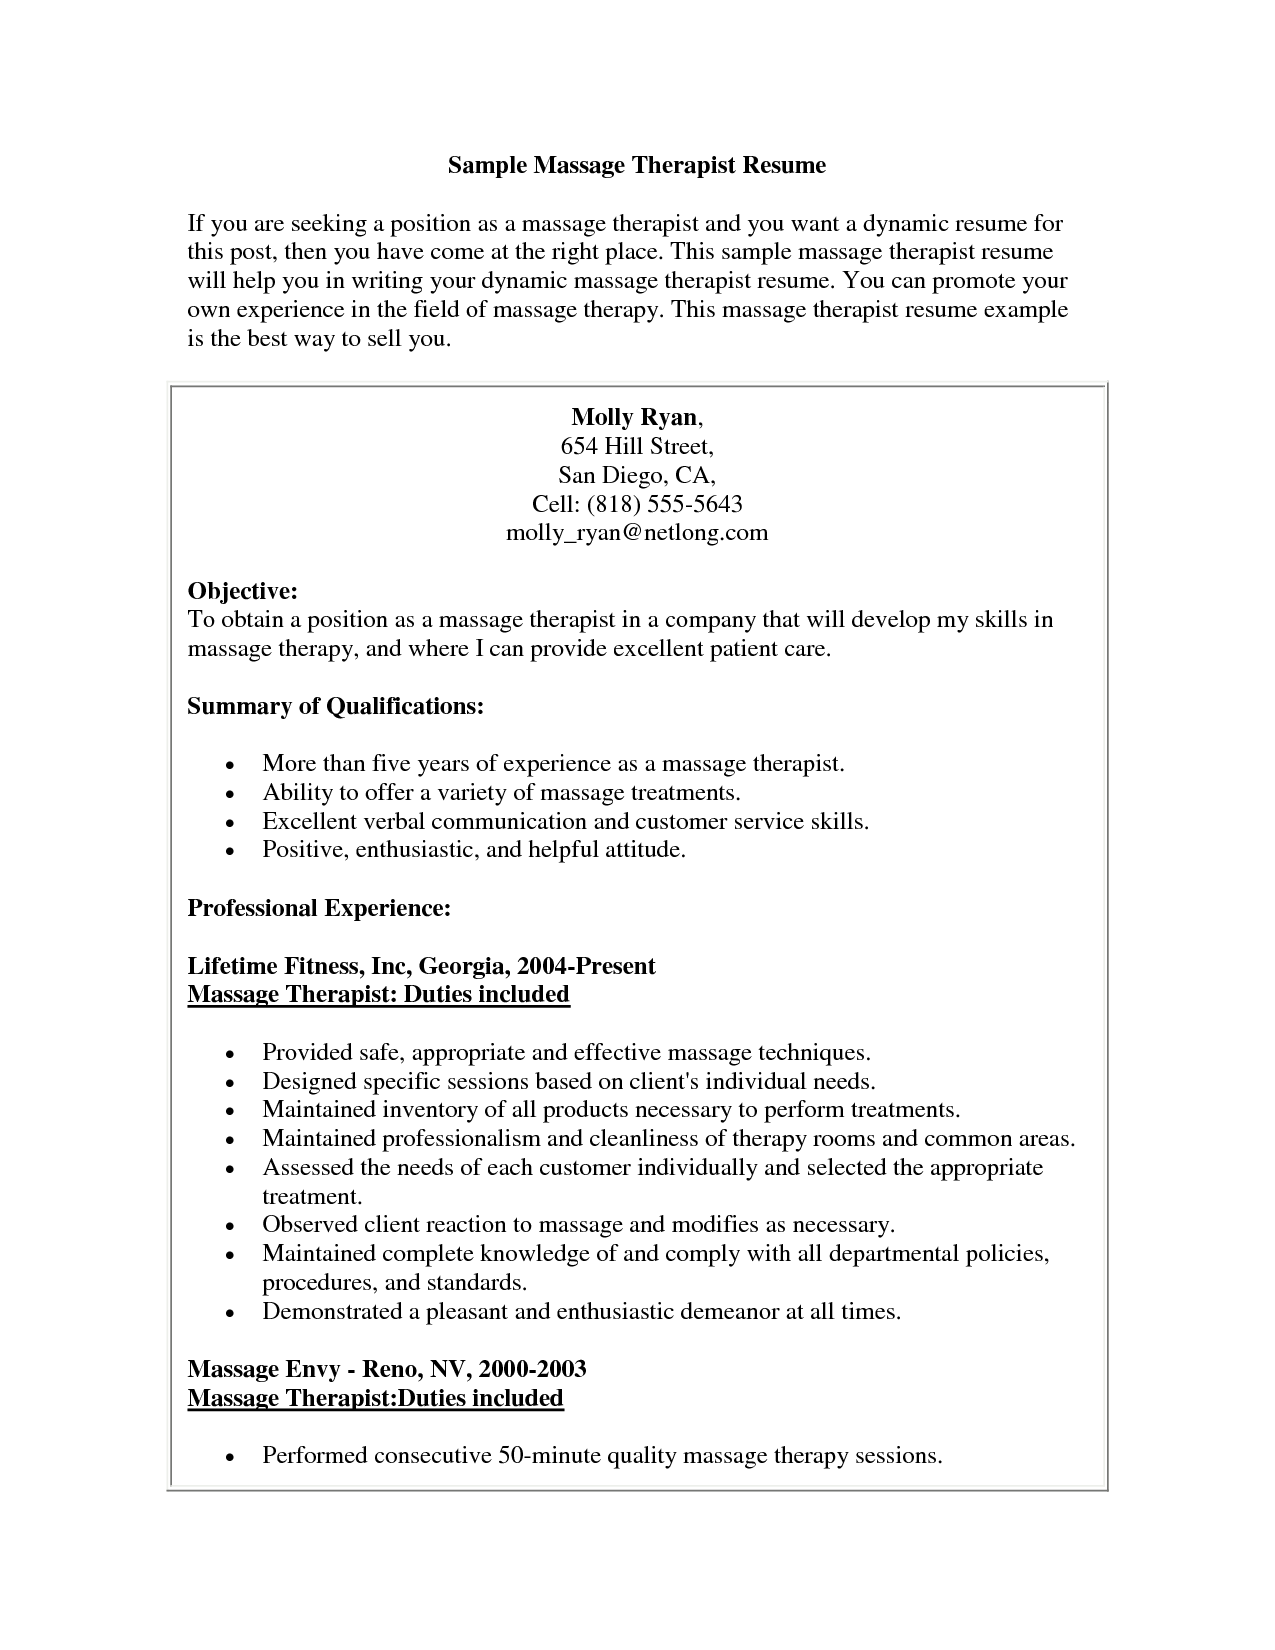 Good Objectives For Resumes Entrancing Massage Therapist Resume Sample Massage Therapist Resume Sample Decorating Design